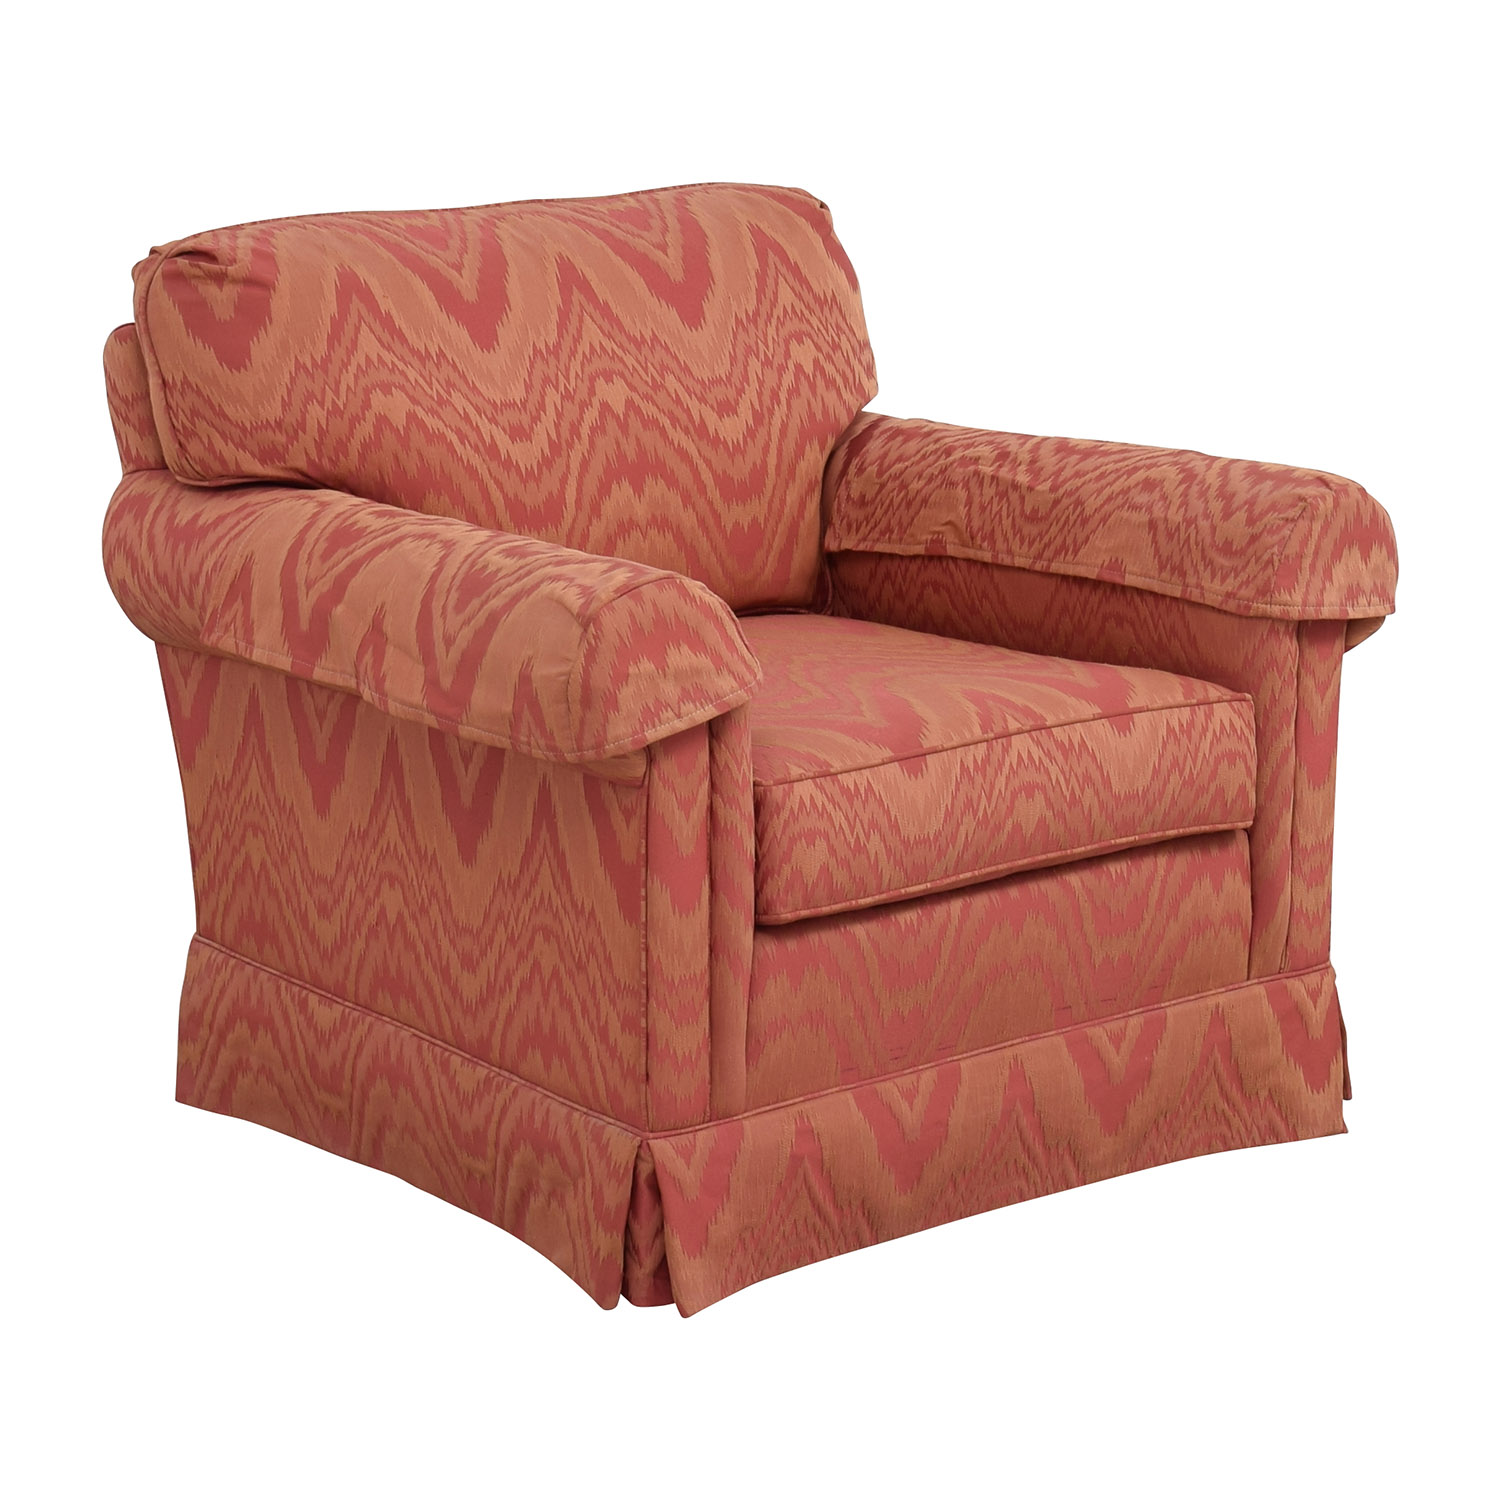 buy Sherrill Orange and Red Patterned Accent Chair Sherrill Accent Chairs